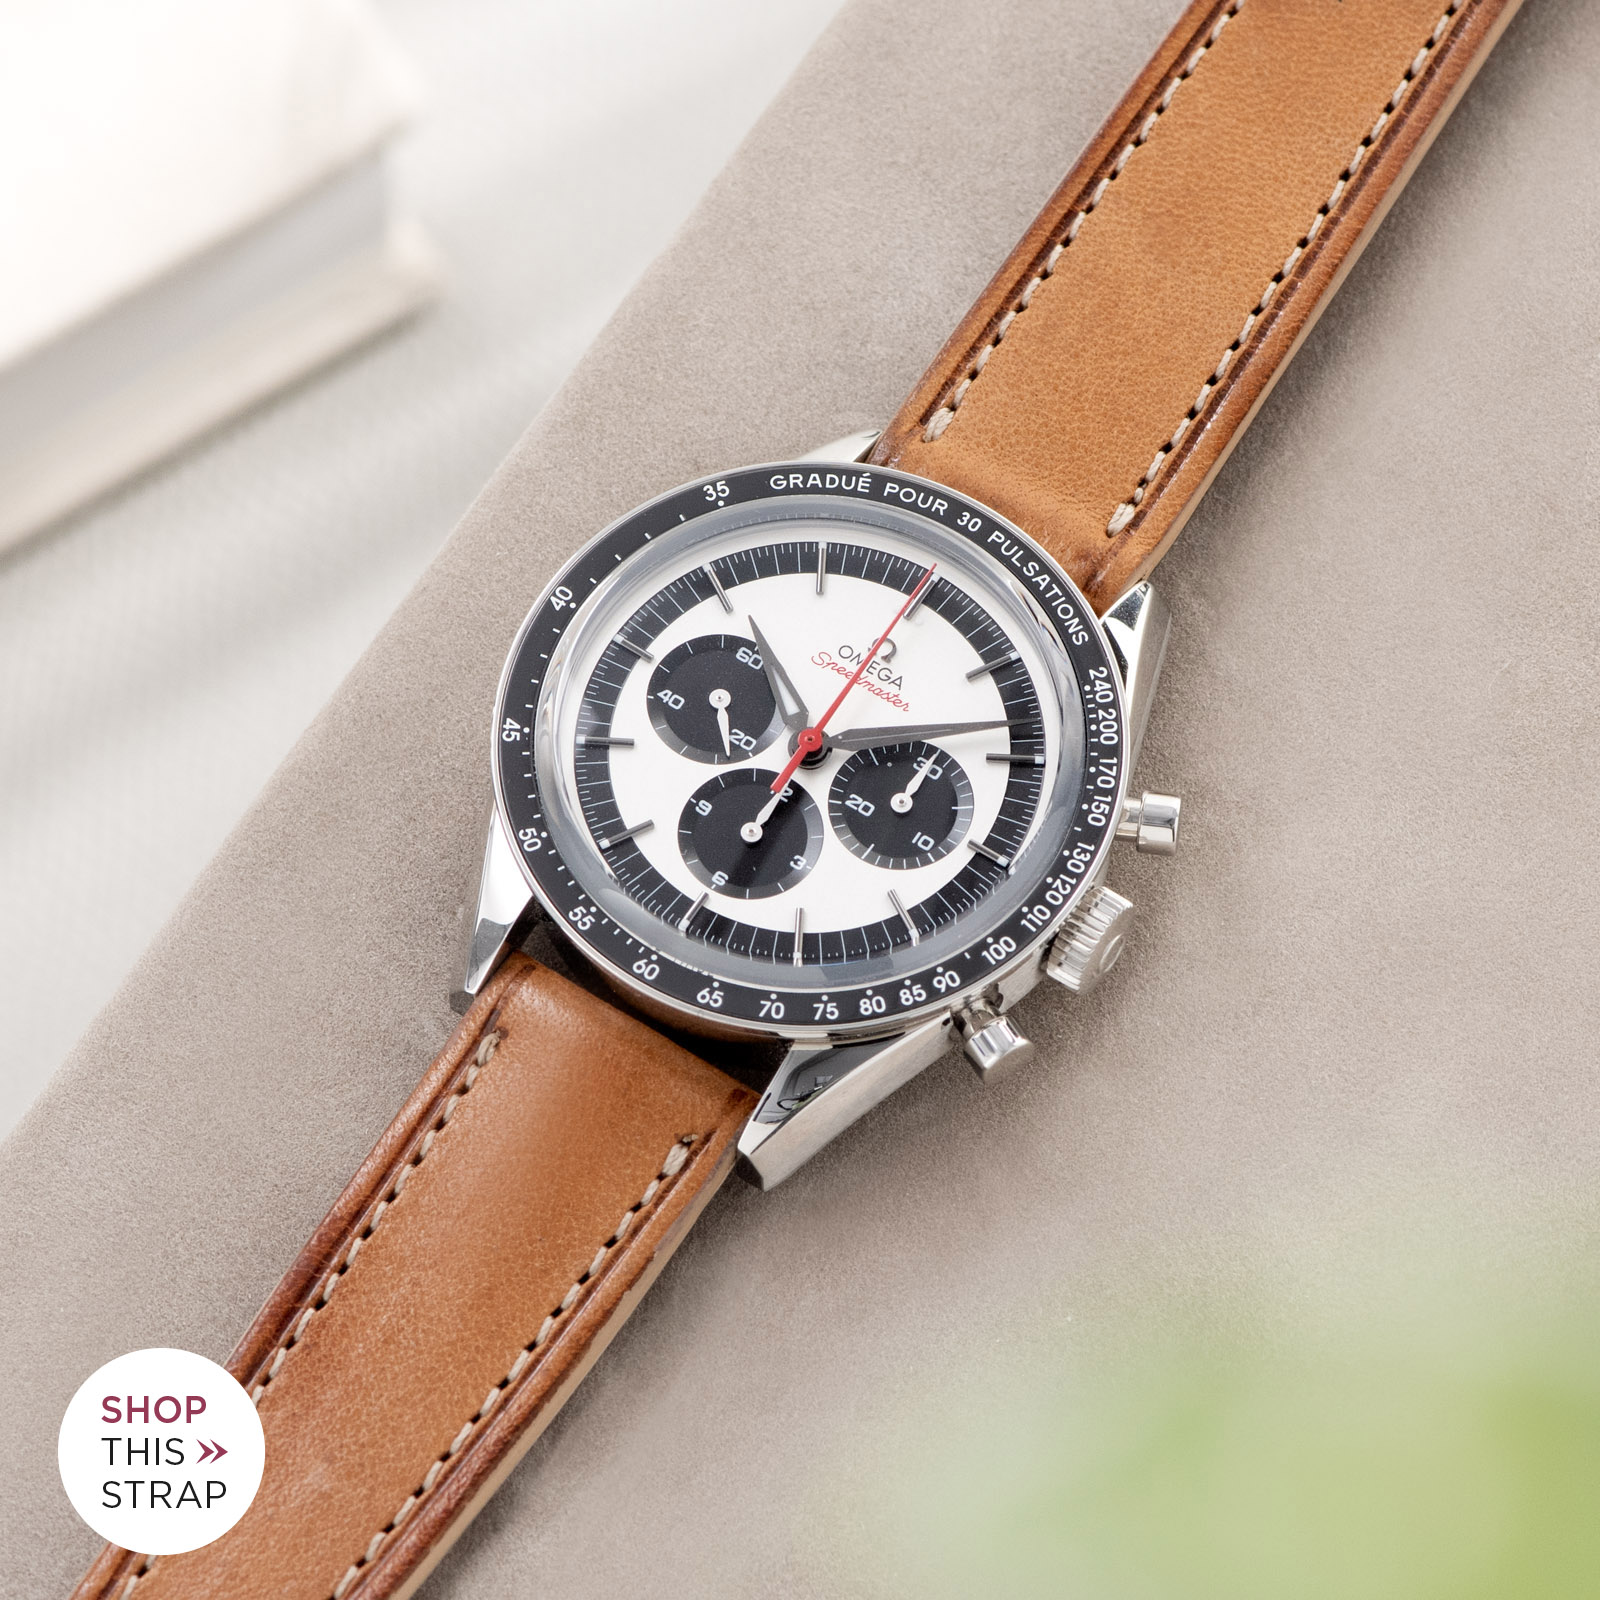 Bulang and Sons_Strap Guide_Omega Speedmaster 2998_Cosaro Brown Retro Leather Watch Strap